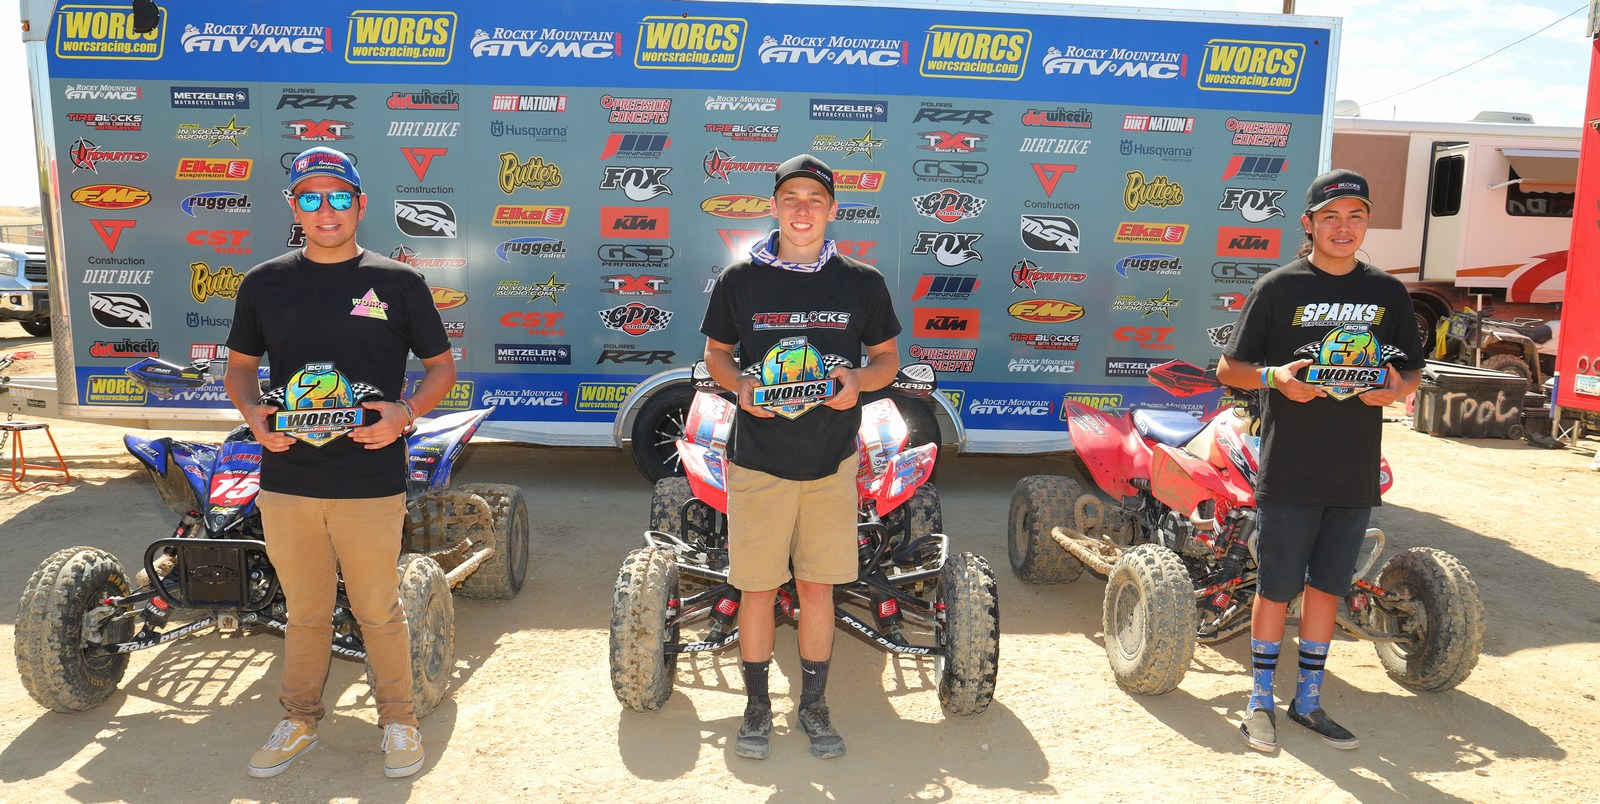 2019-07-proam-atv-podium-worcs-racing